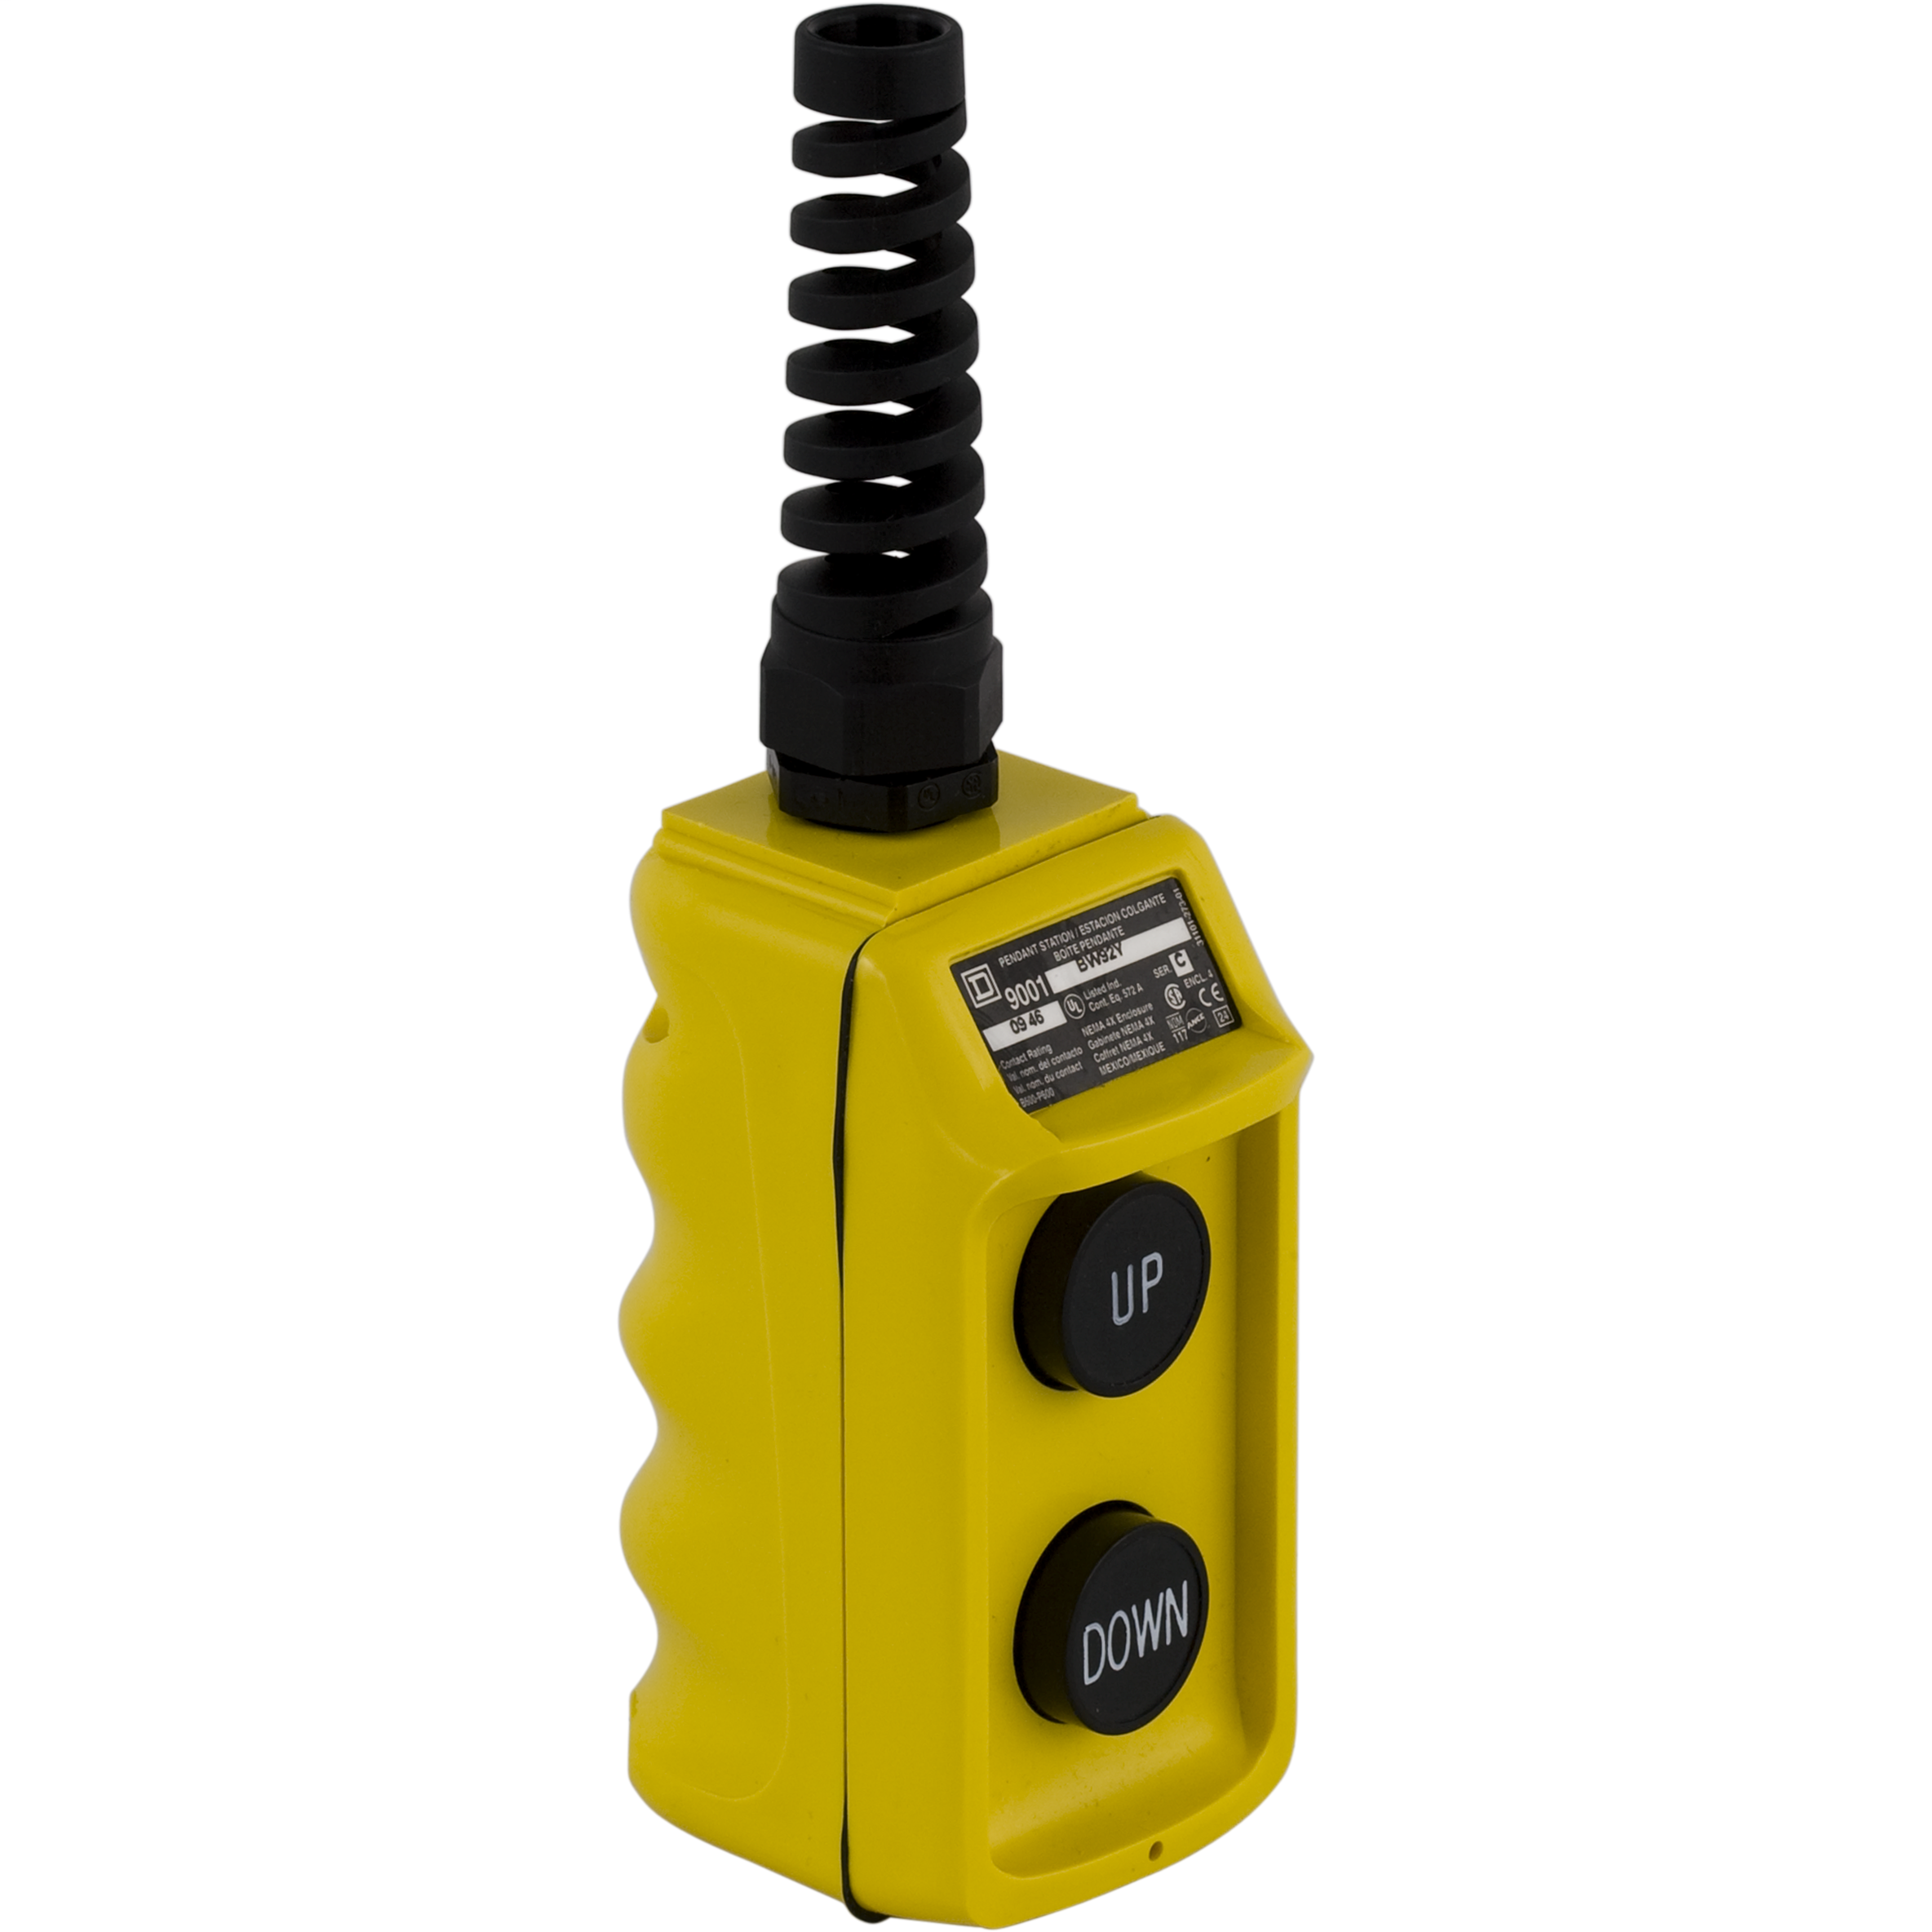 SQD 9001BW92Y UP DOWN PENDANT PUSH BUTT STATION NO Contacts Yellow Enc 600VAC 5A